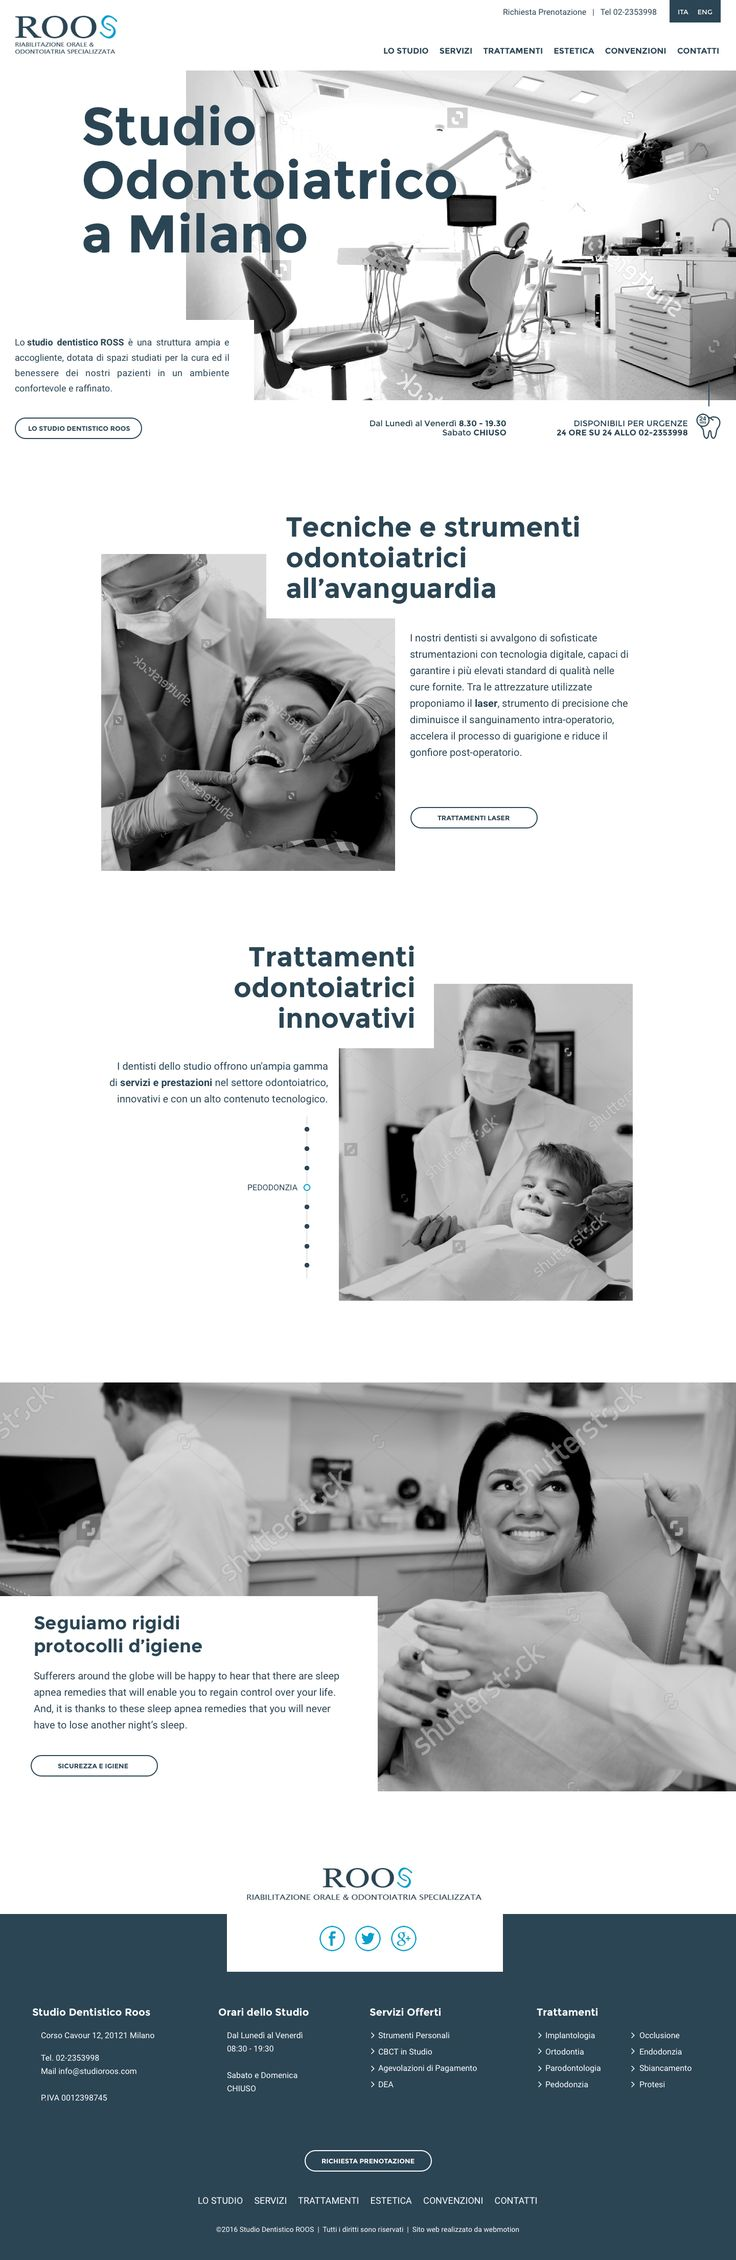 Website for a dental practice in Milan (Italy) #webdesign #UIdesign